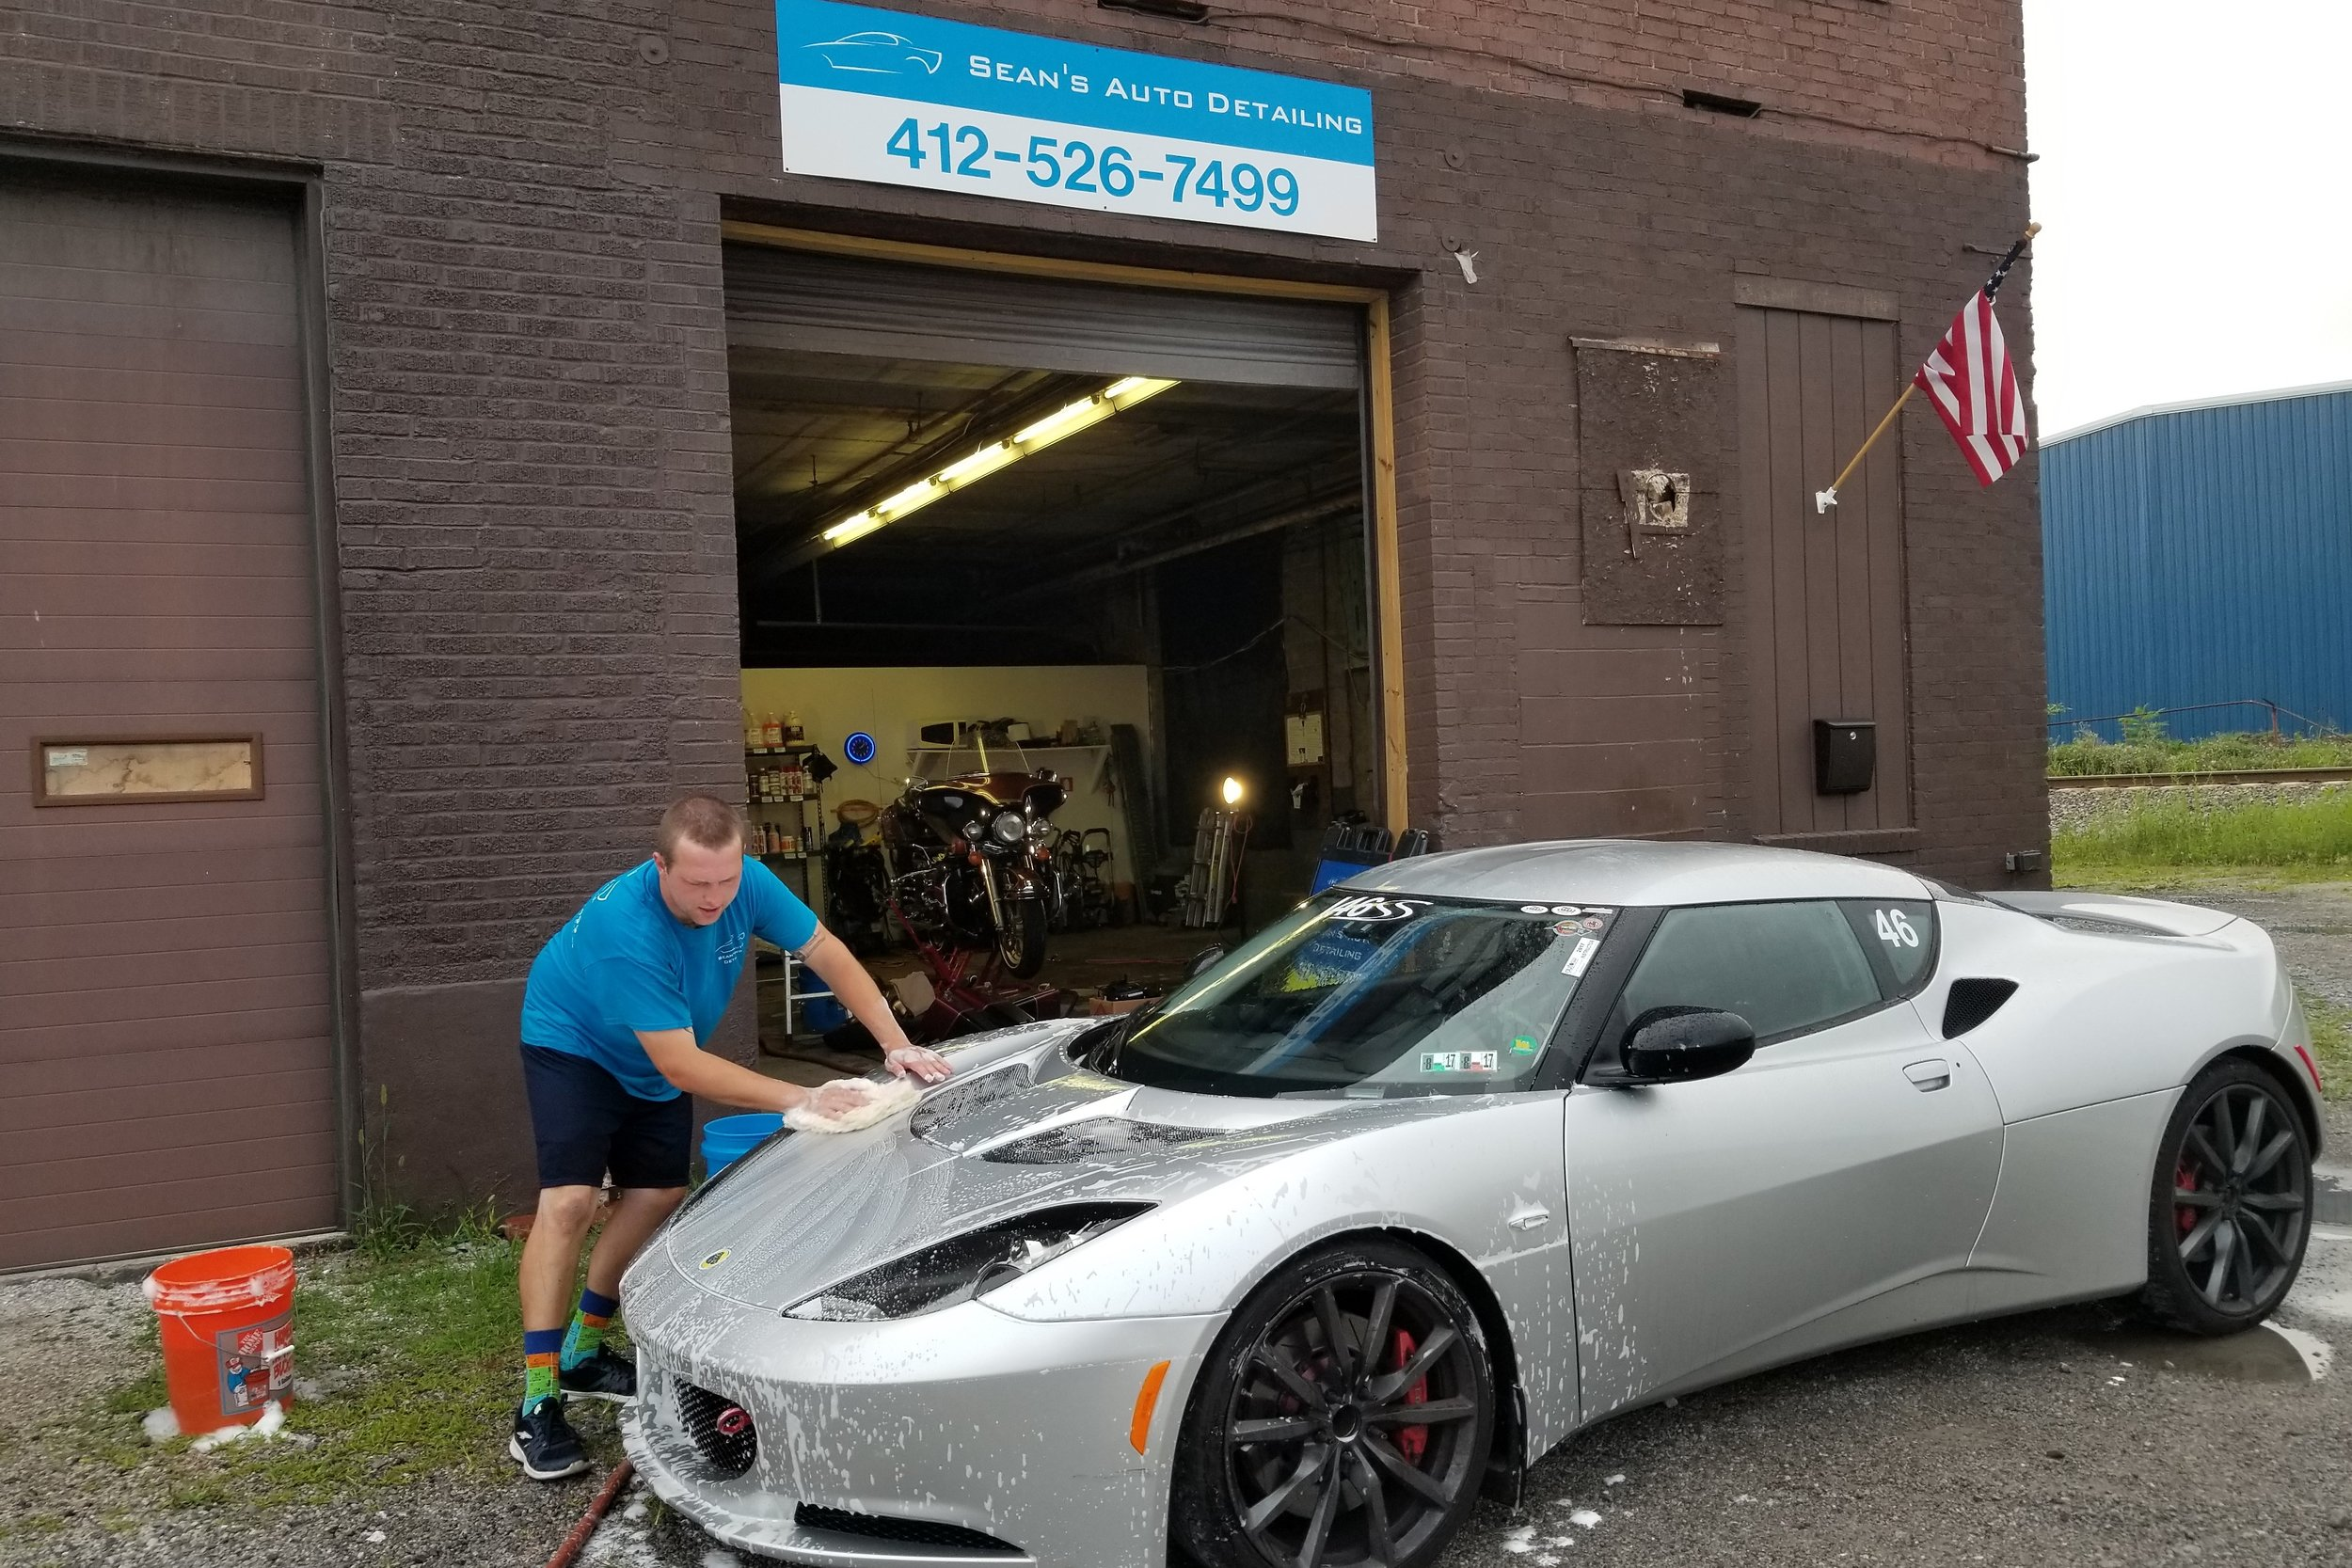 Sean's Auto Detailing - 845 4th Ave, (412) 526-7499